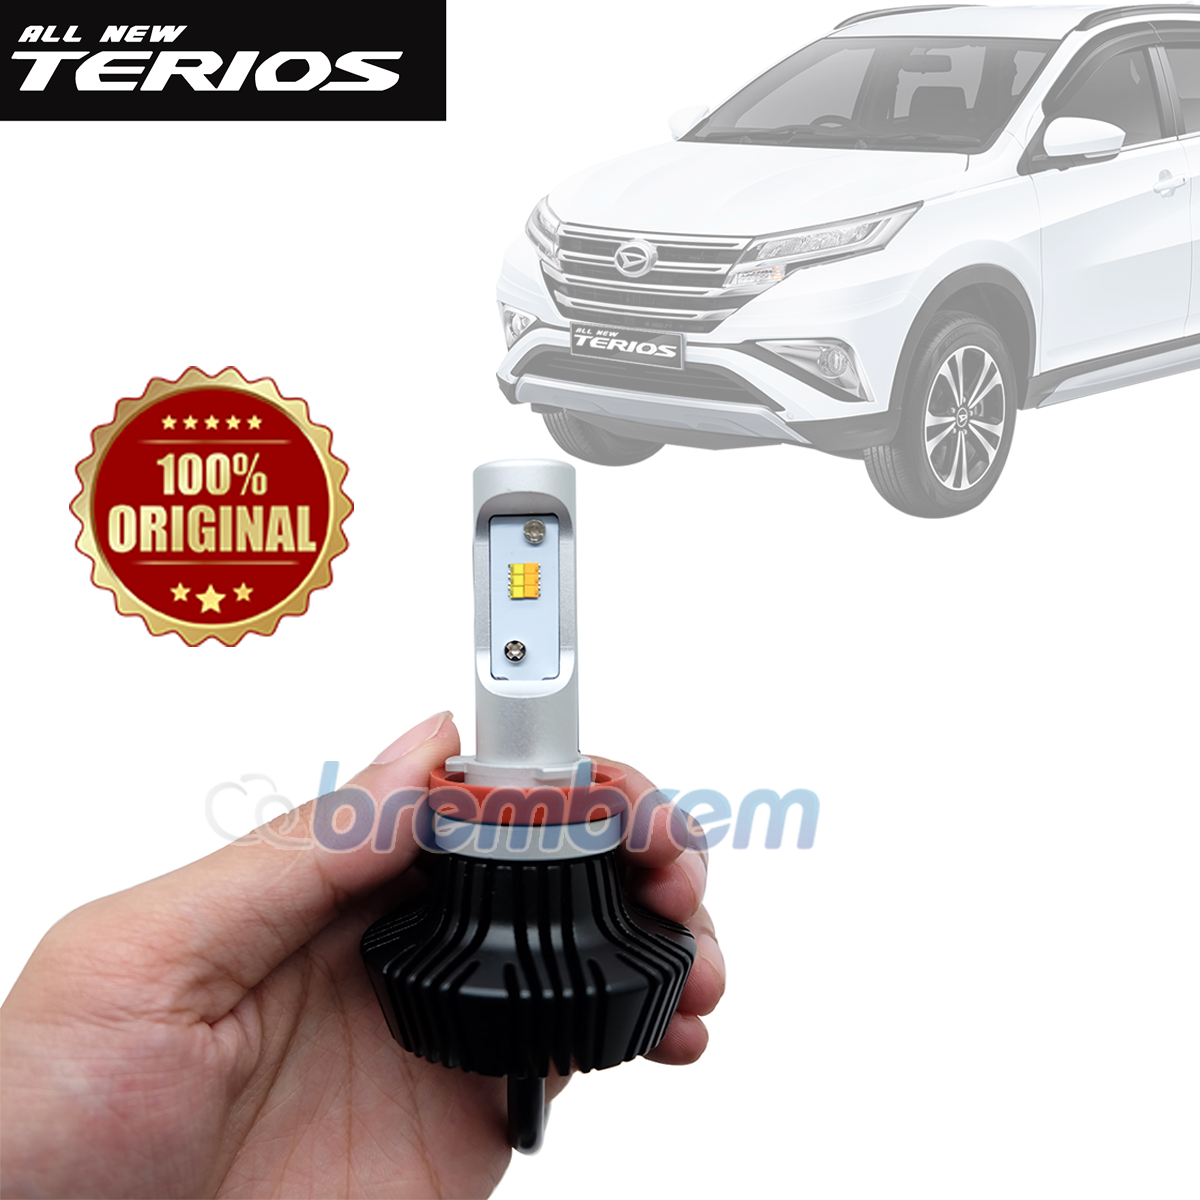 HIRO i-PRECISION H11 DUAL COLOR - LAMPU LED MOBIL DAIHATSU ALL NEW TERIOS